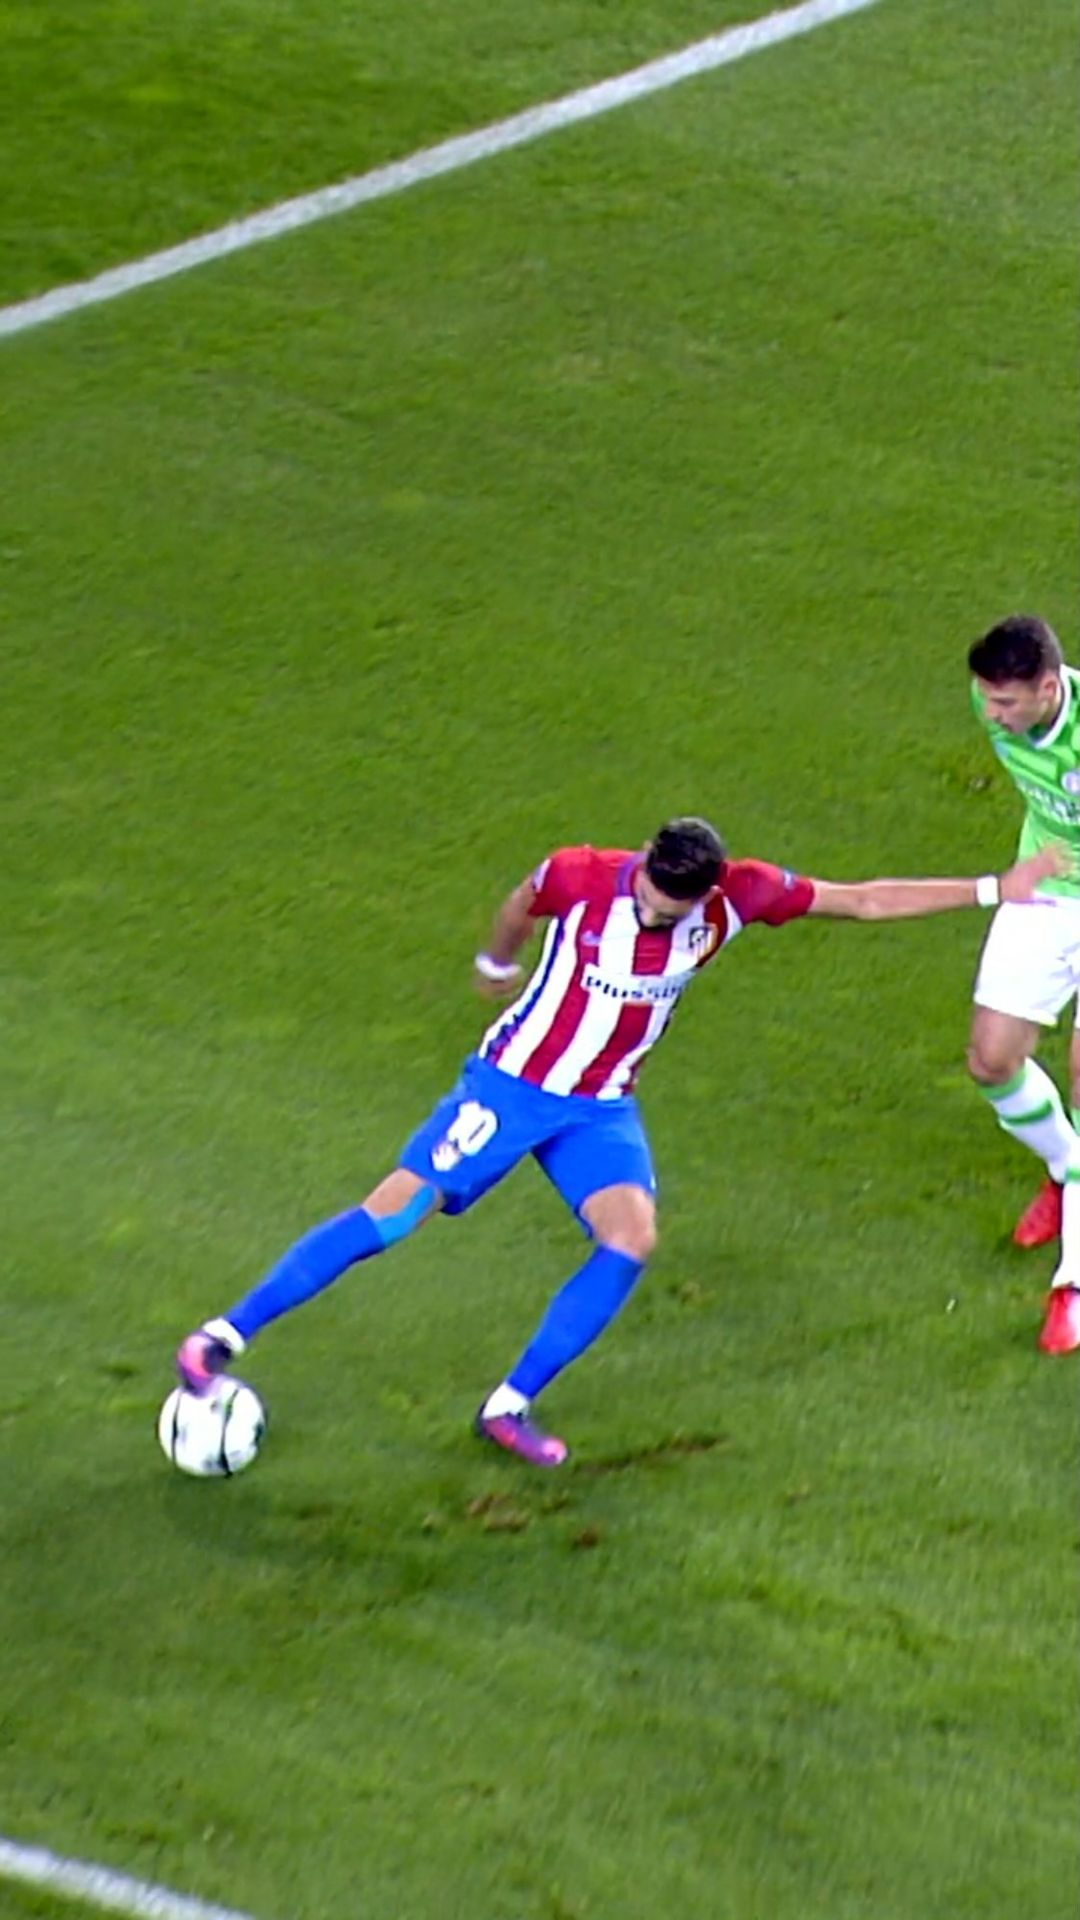 MAD skills from Carrasco     ...